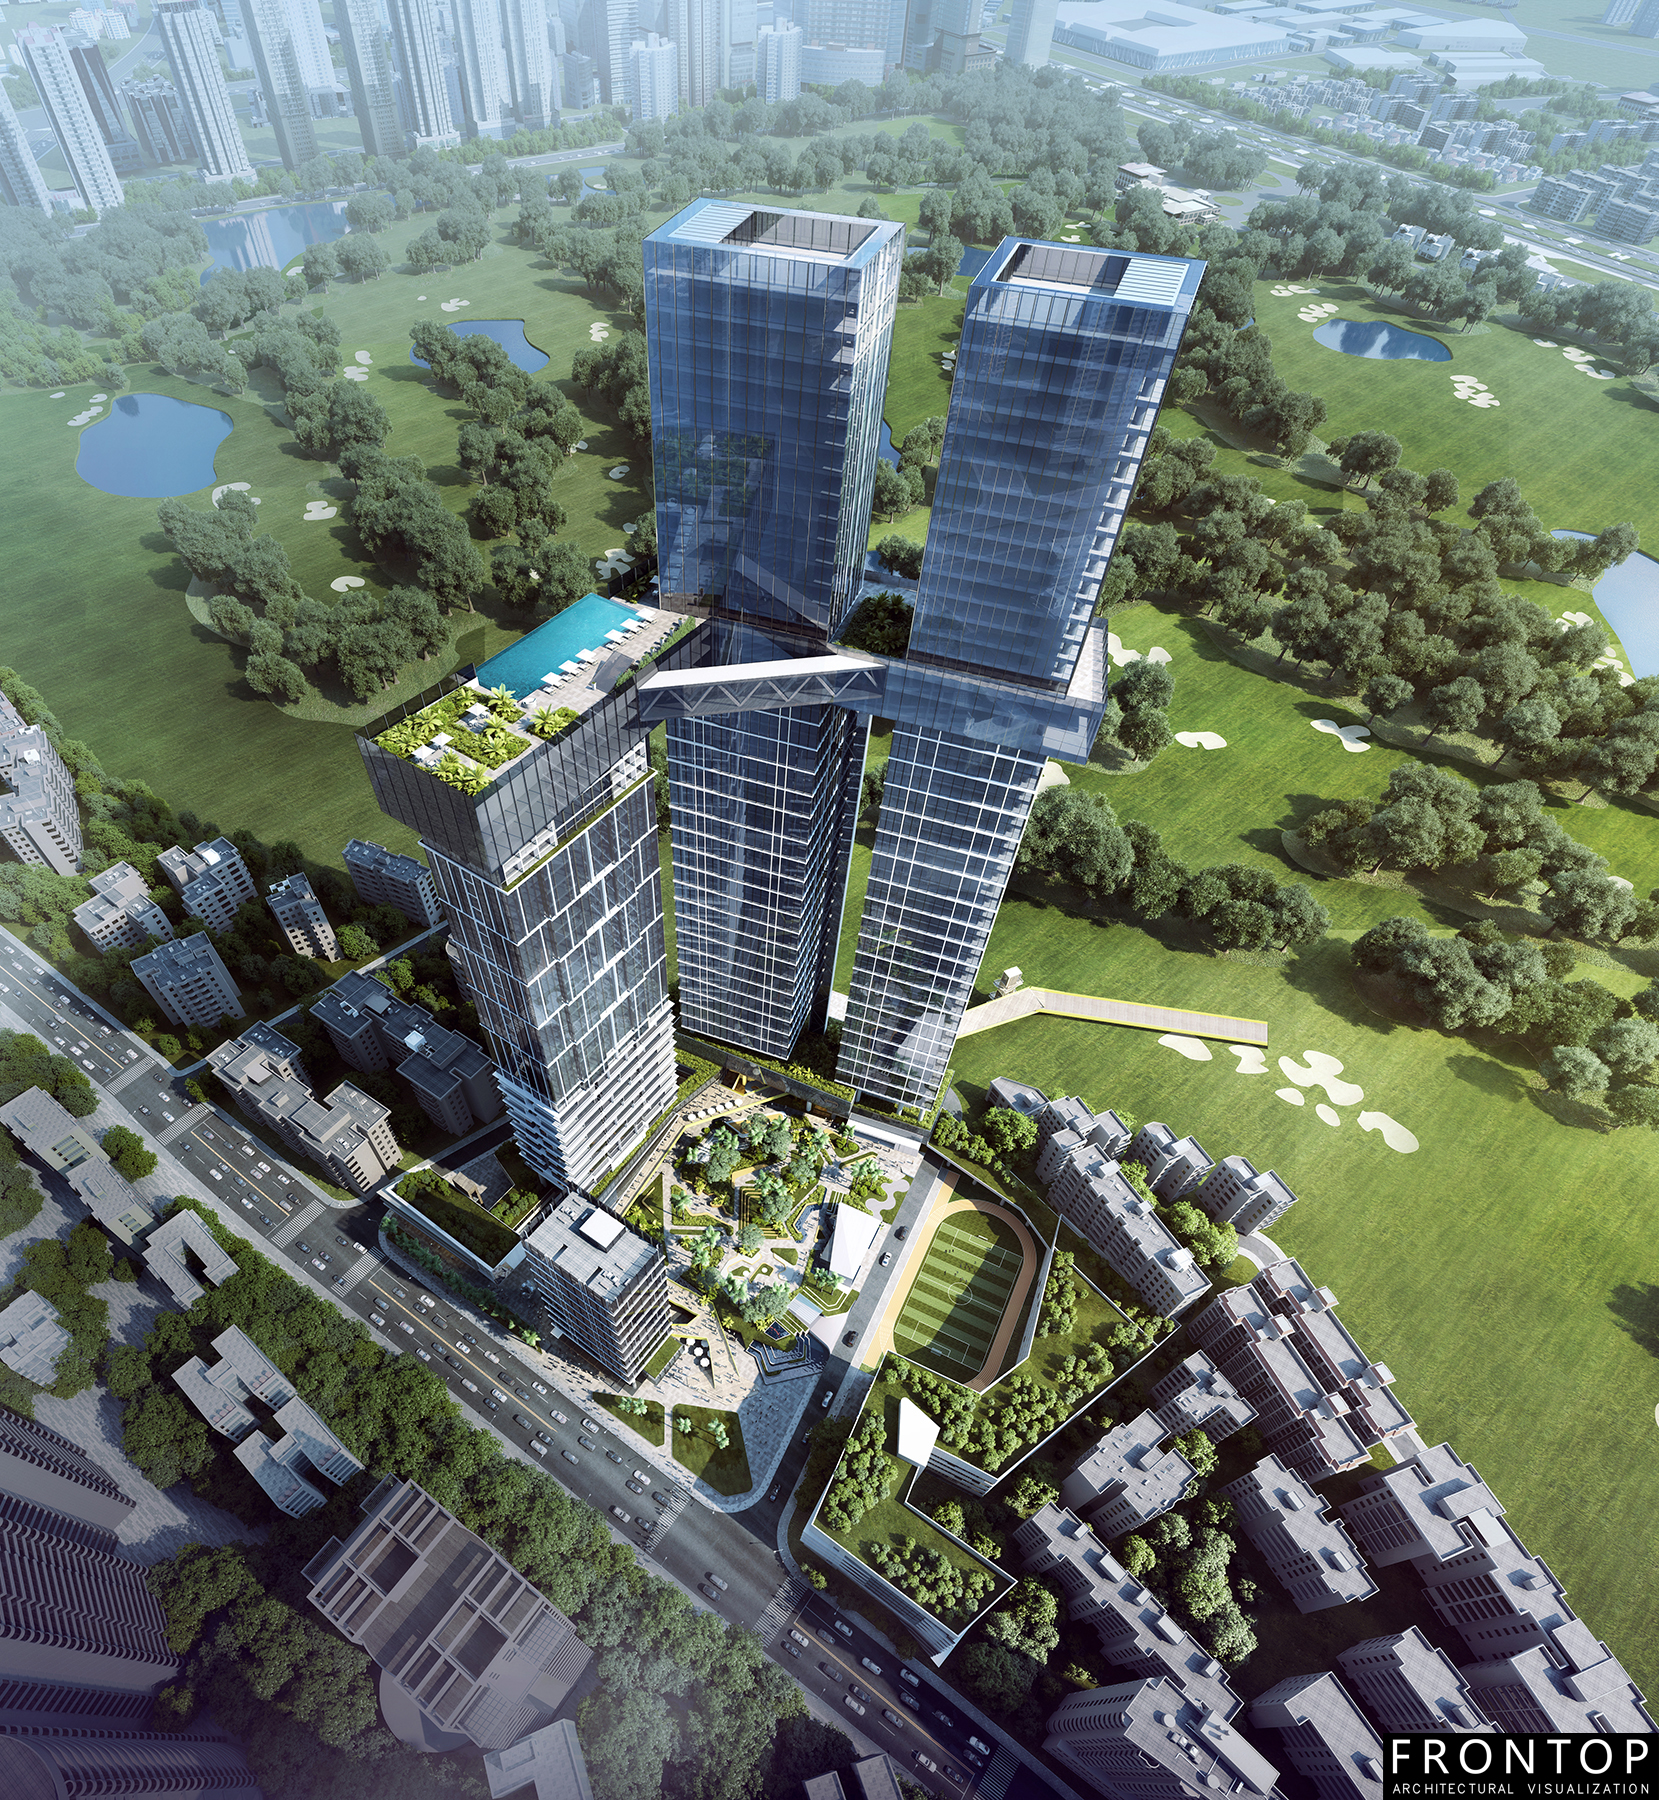 Hot Selling for Fast Architectural Rendering - Shenzhen Futong – Frontop